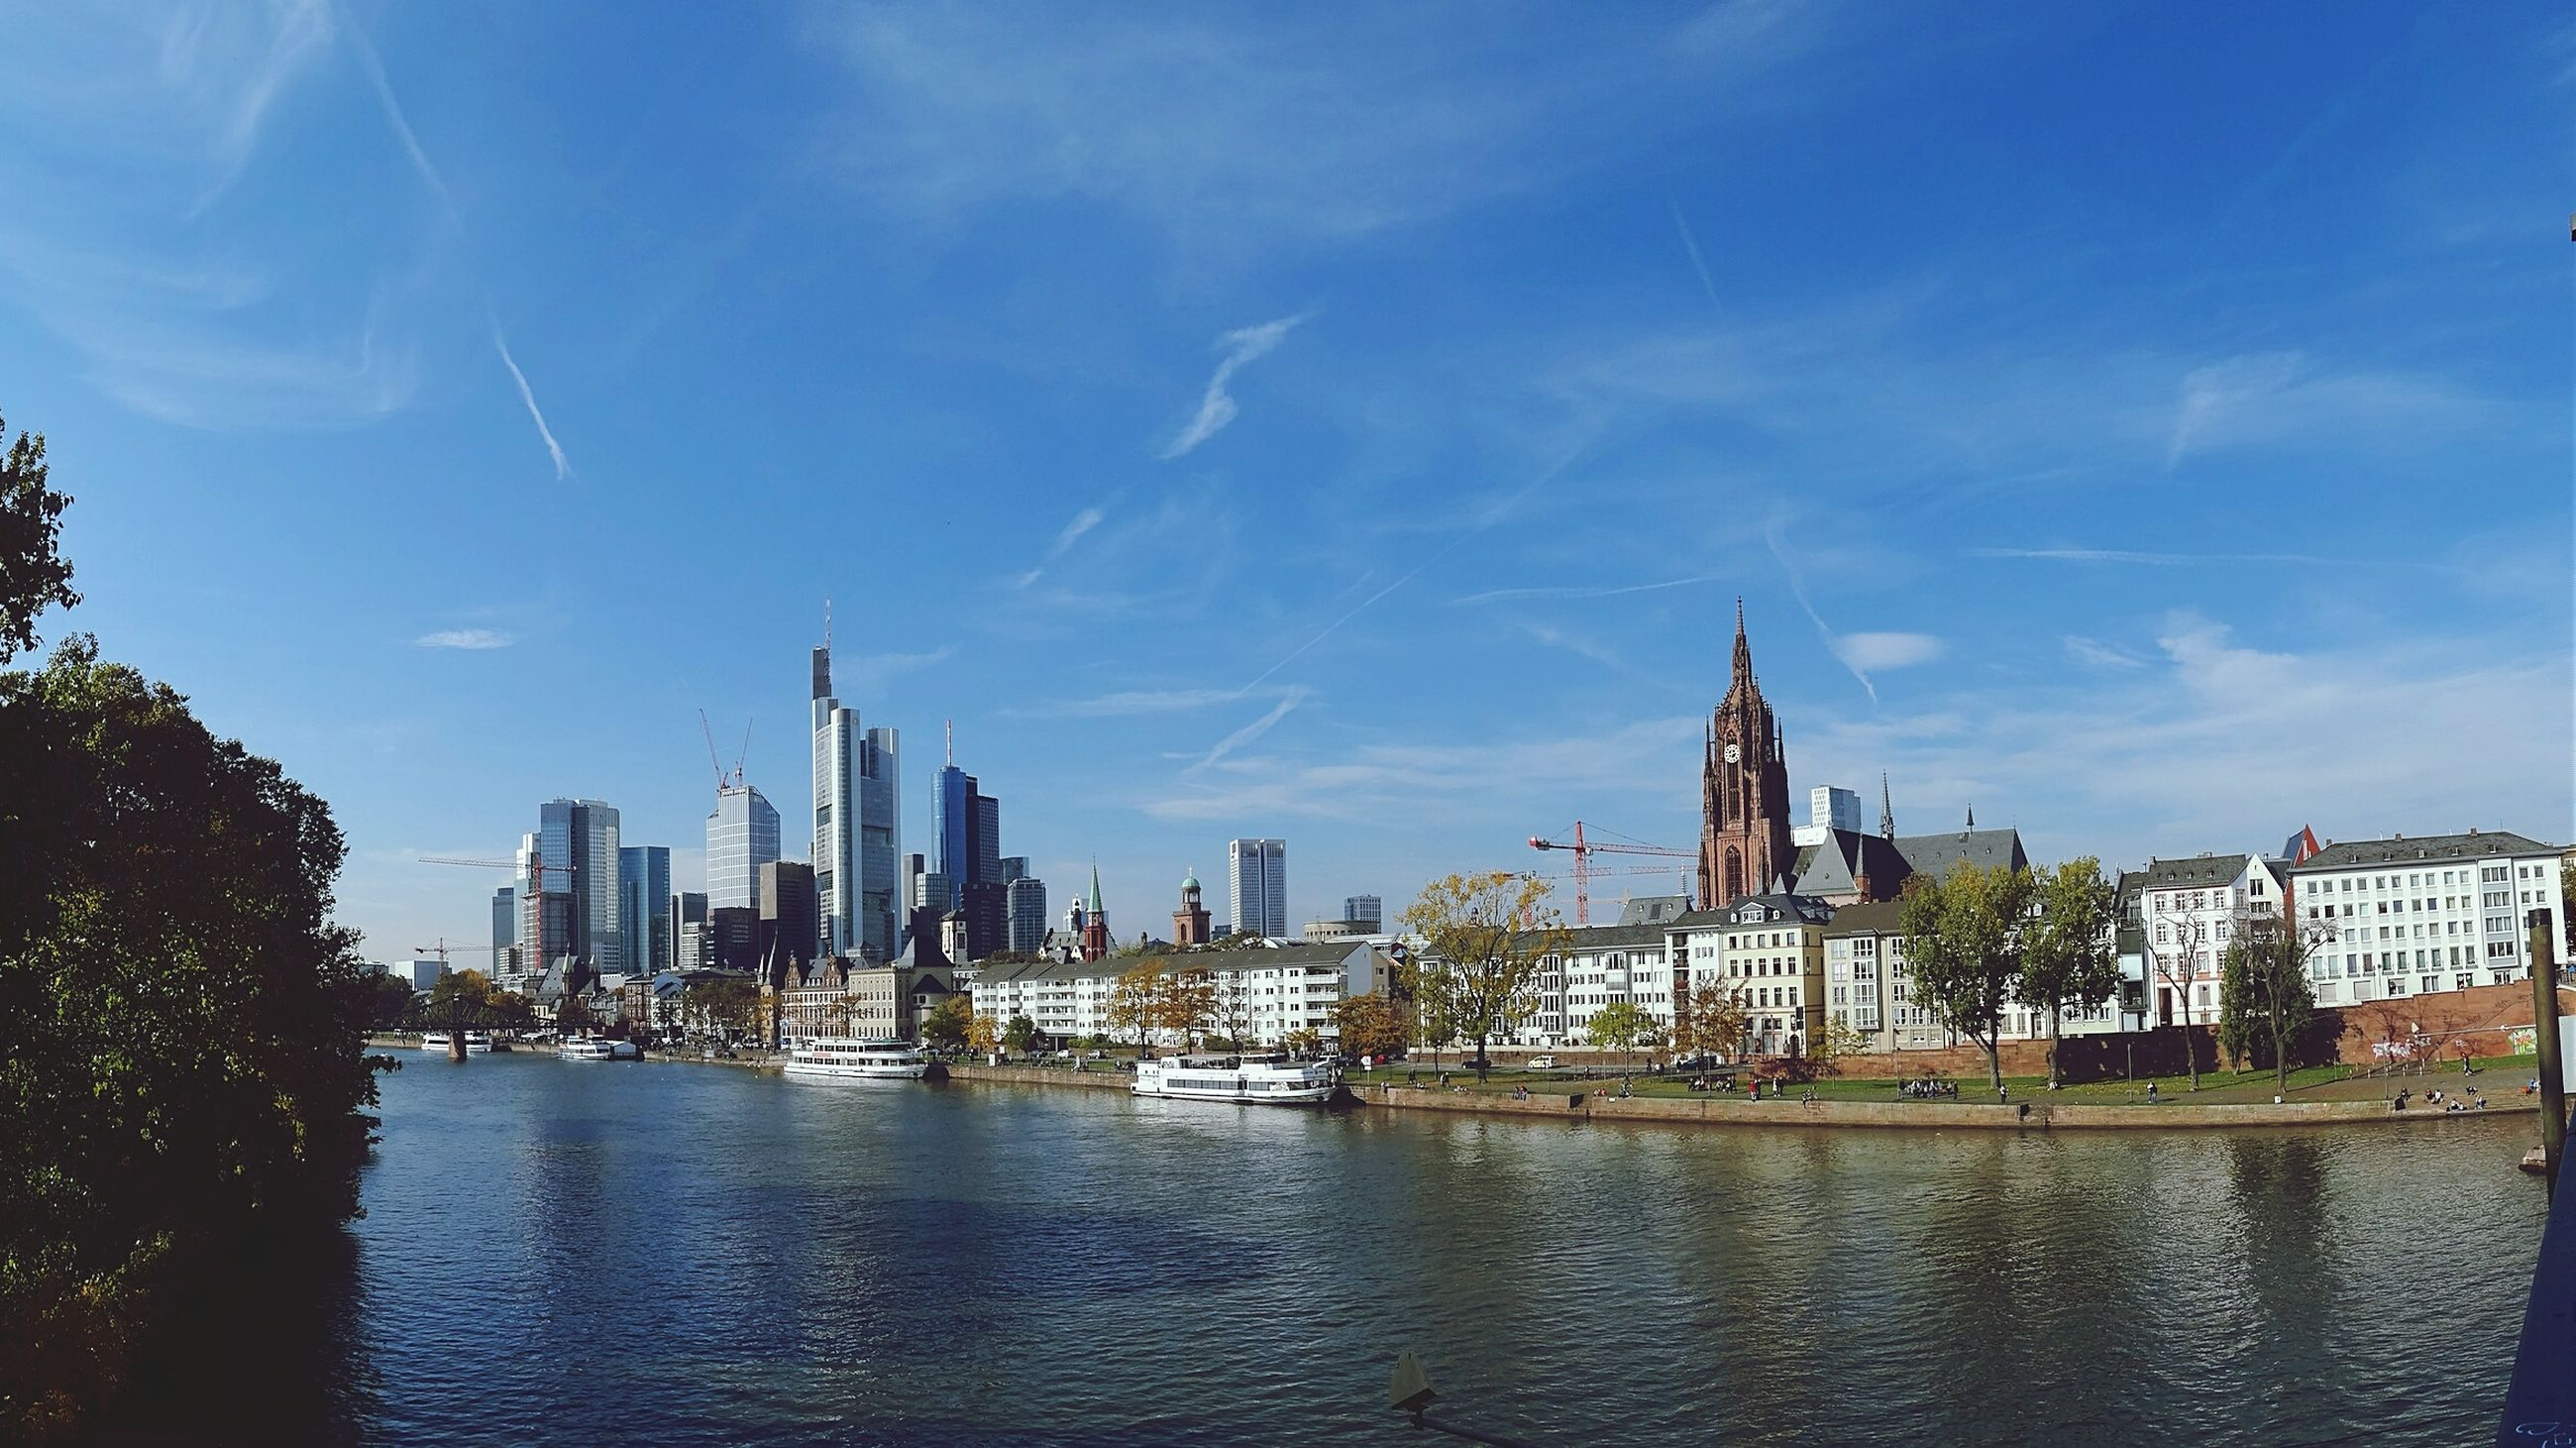 architecture, building exterior, built structure, water, city, waterfront, sky, river, nautical vessel, cityscape, transportation, capital cities, travel destinations, tower, famous place, blue, cloud - sky, travel, mode of transport, tall - high